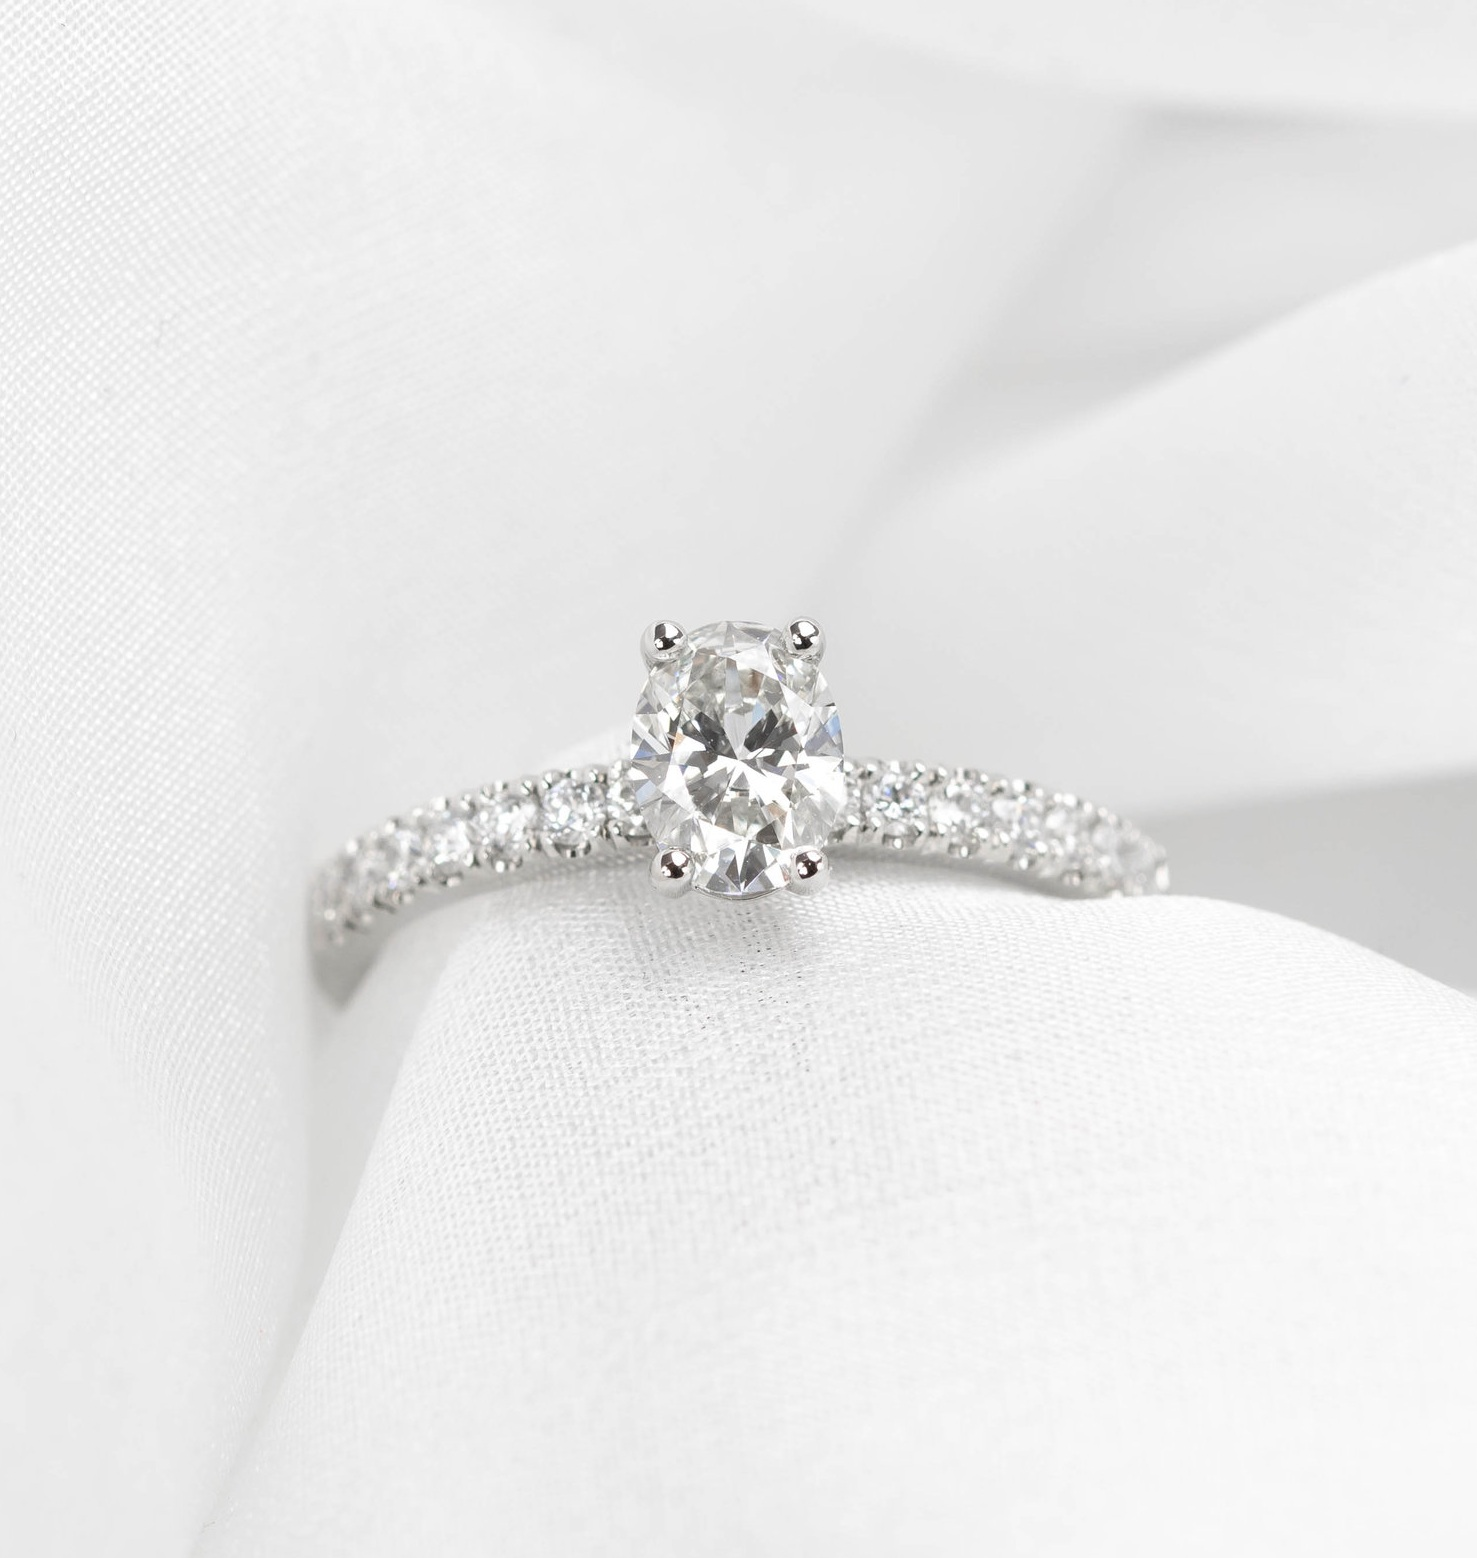 Platinum mounted oval diamond set ring with diamond set shoulders. Made in Chichester, England.